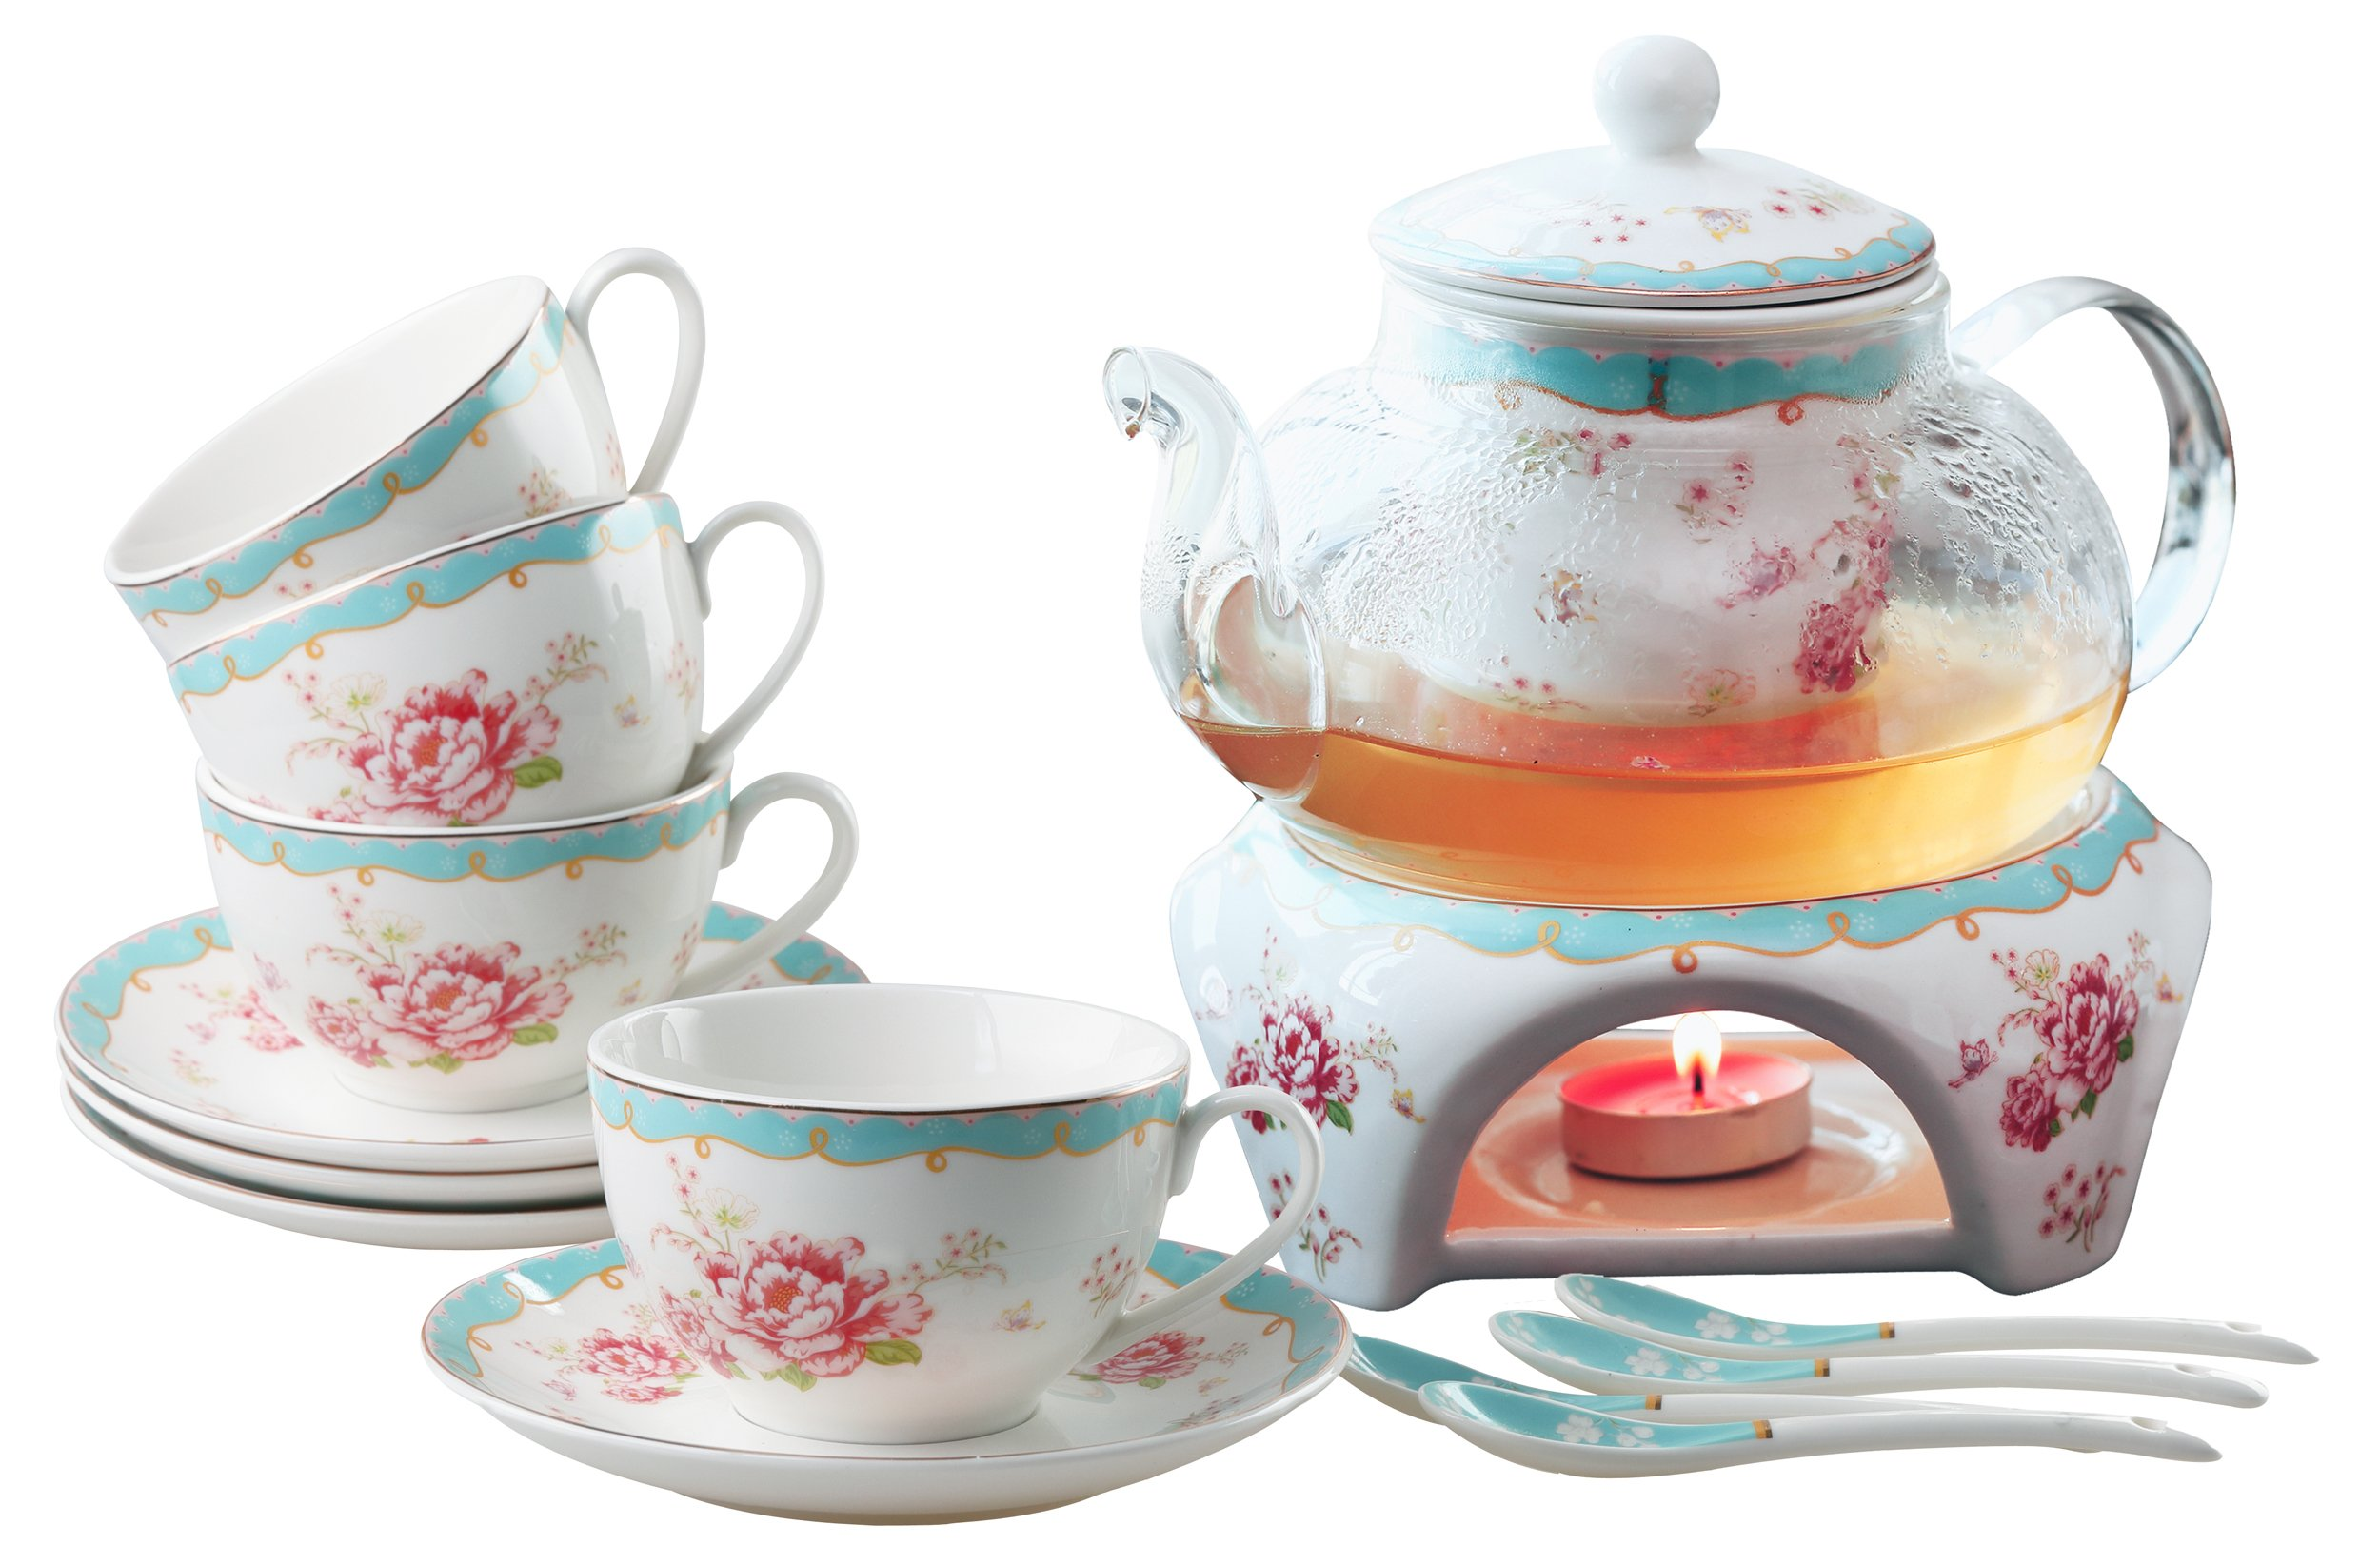 Jusalpha Fine China Vintage Rose Flower Series Coffee Cup-Teacup Saucer Spoon Set with Teapot Warmer & Filter (Rose Glass pot 03)